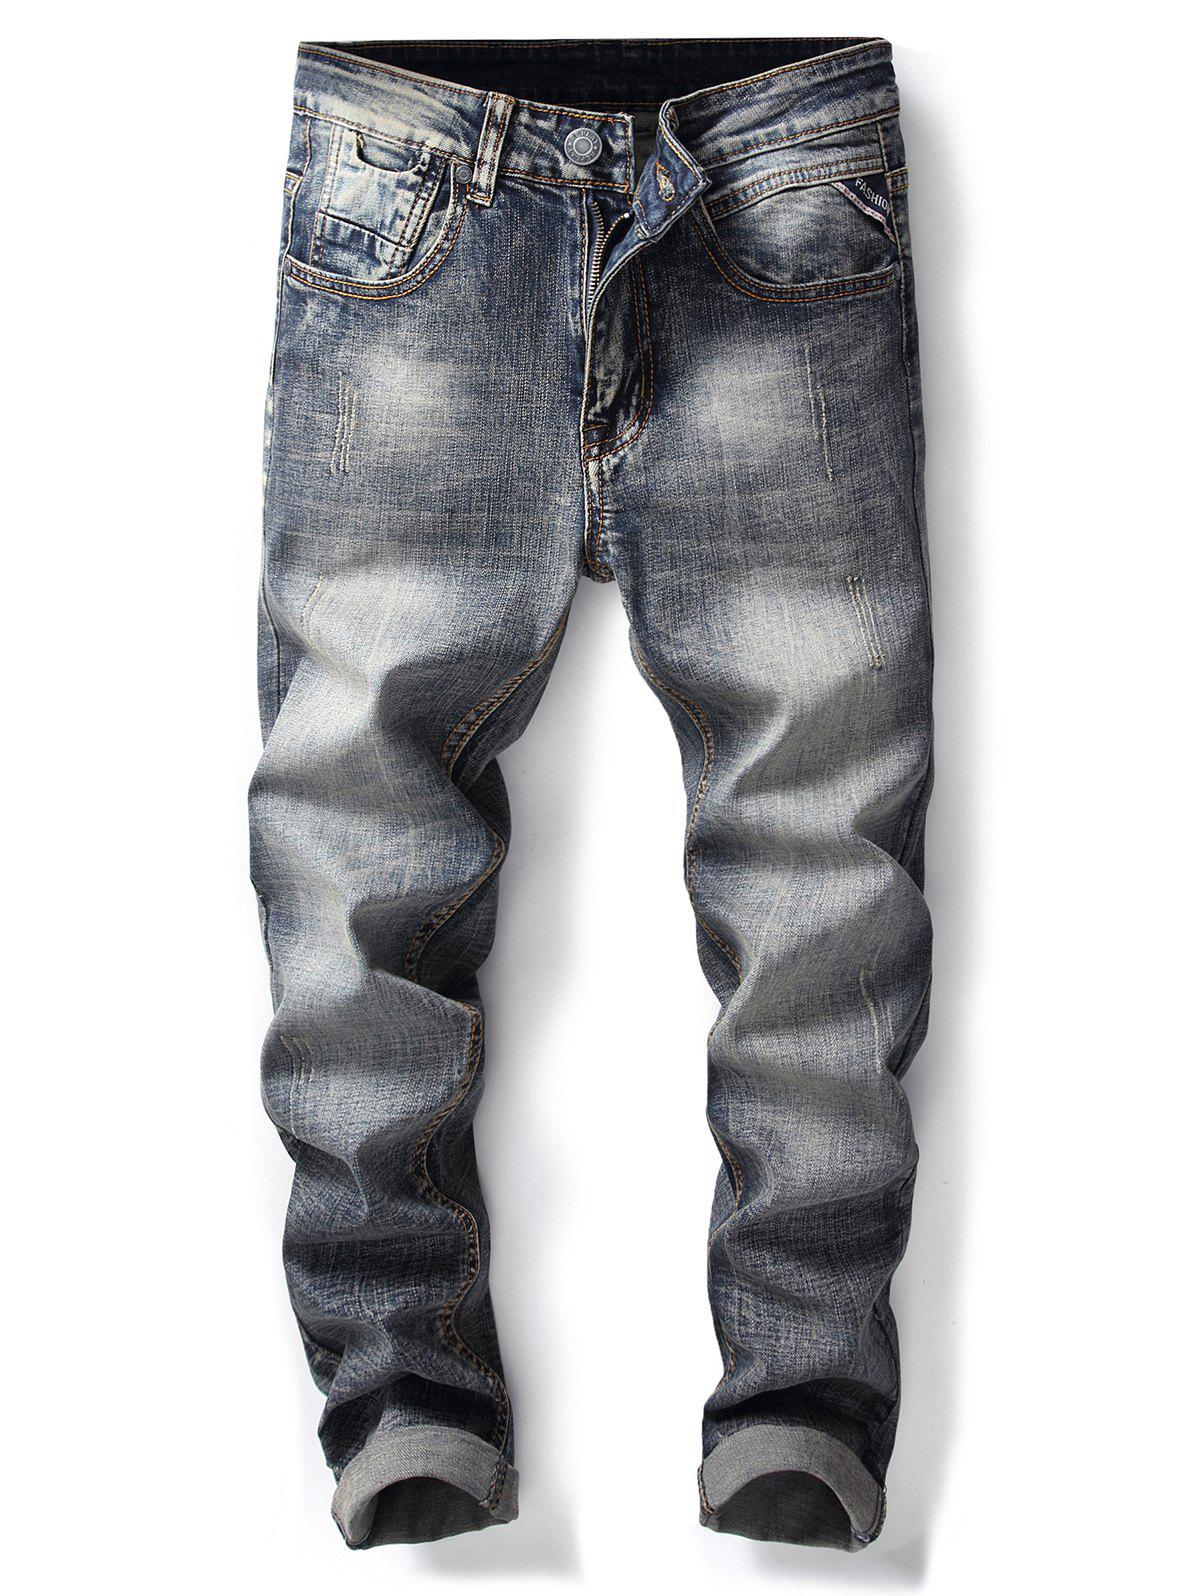 Unique Bleach Wash Straight Leg Ripped Jeans